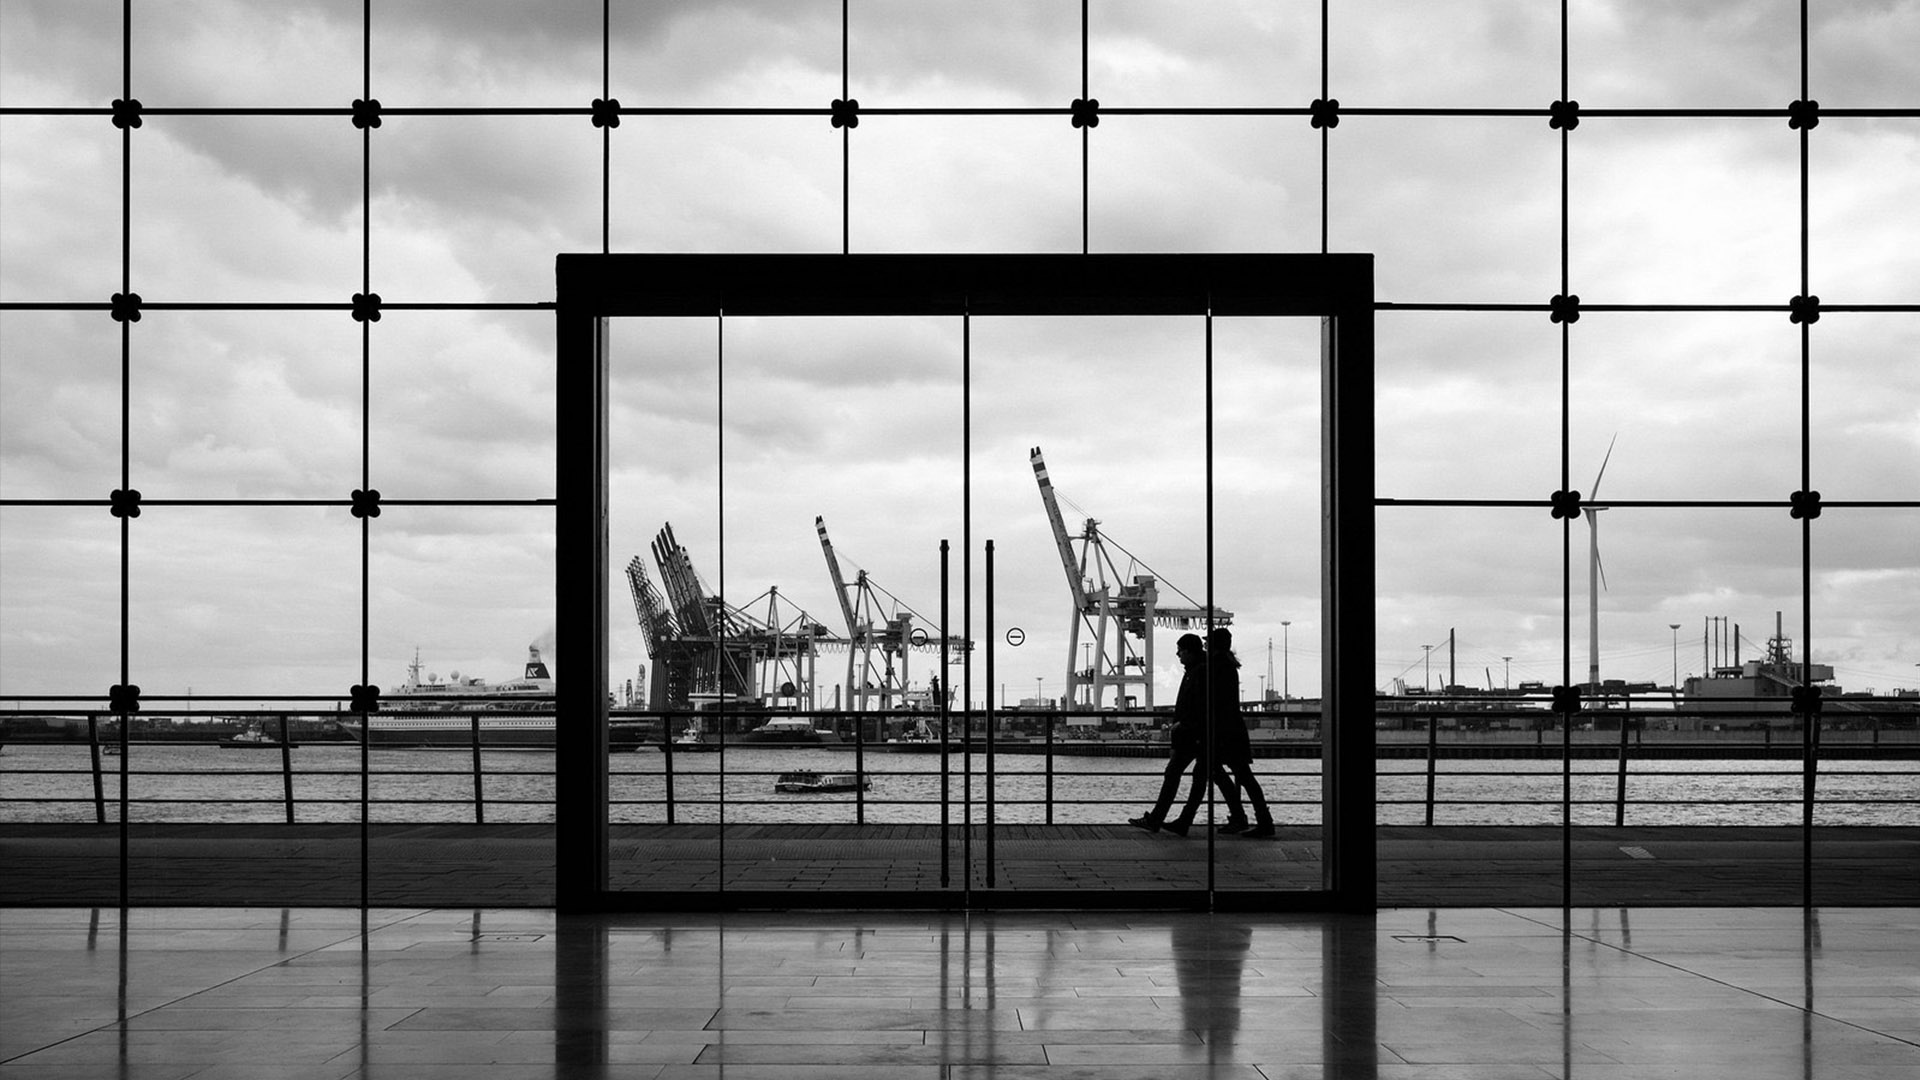 Photofocus Photographer of the Day Jens with Hafen, Hamburg, Germany. Travel